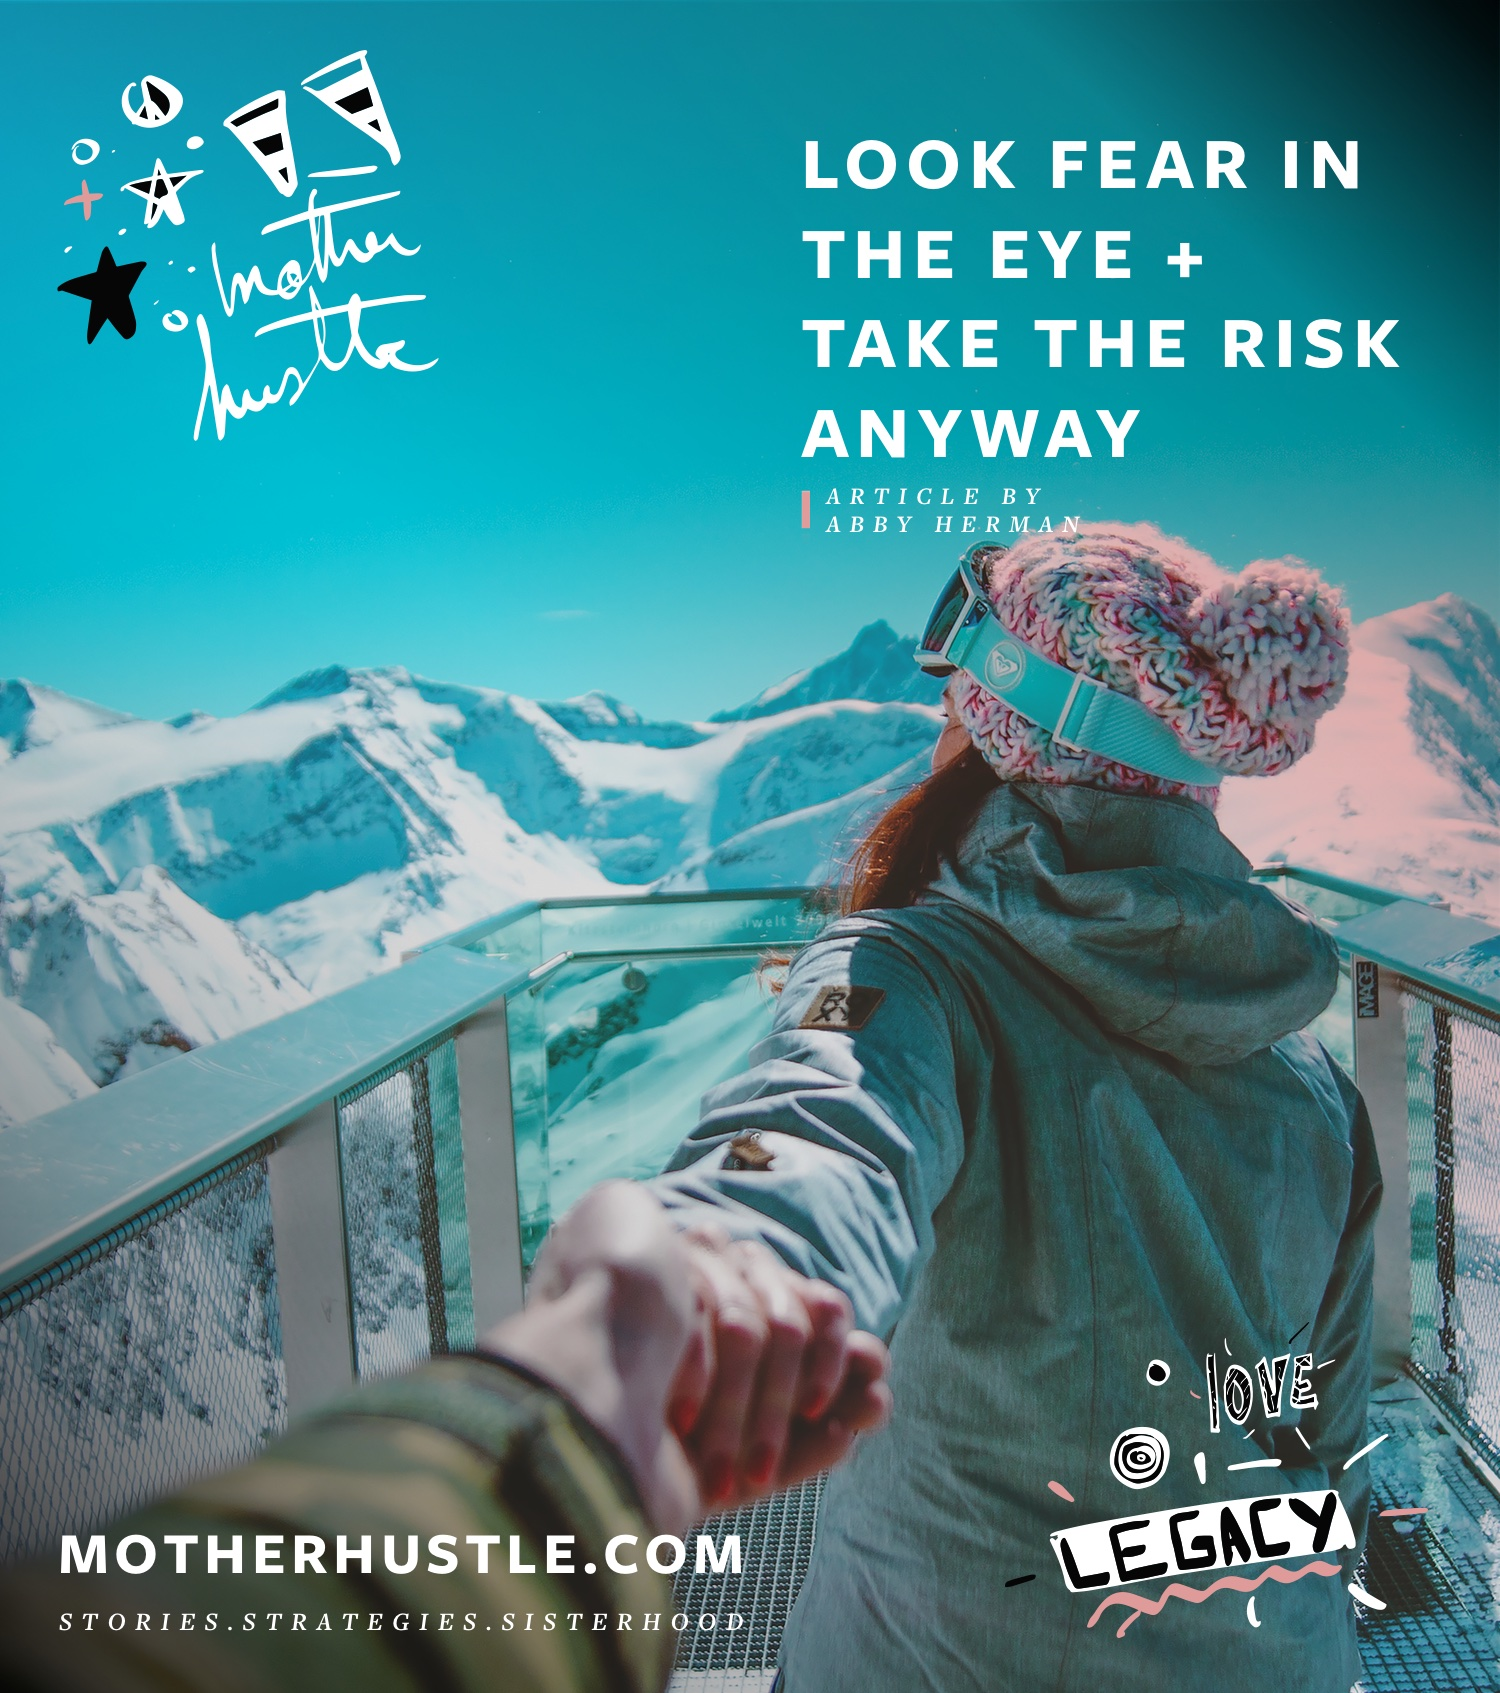 Look Fear in the Eye & Take the Risk Anyway - by Abby Herman for MotherHustle